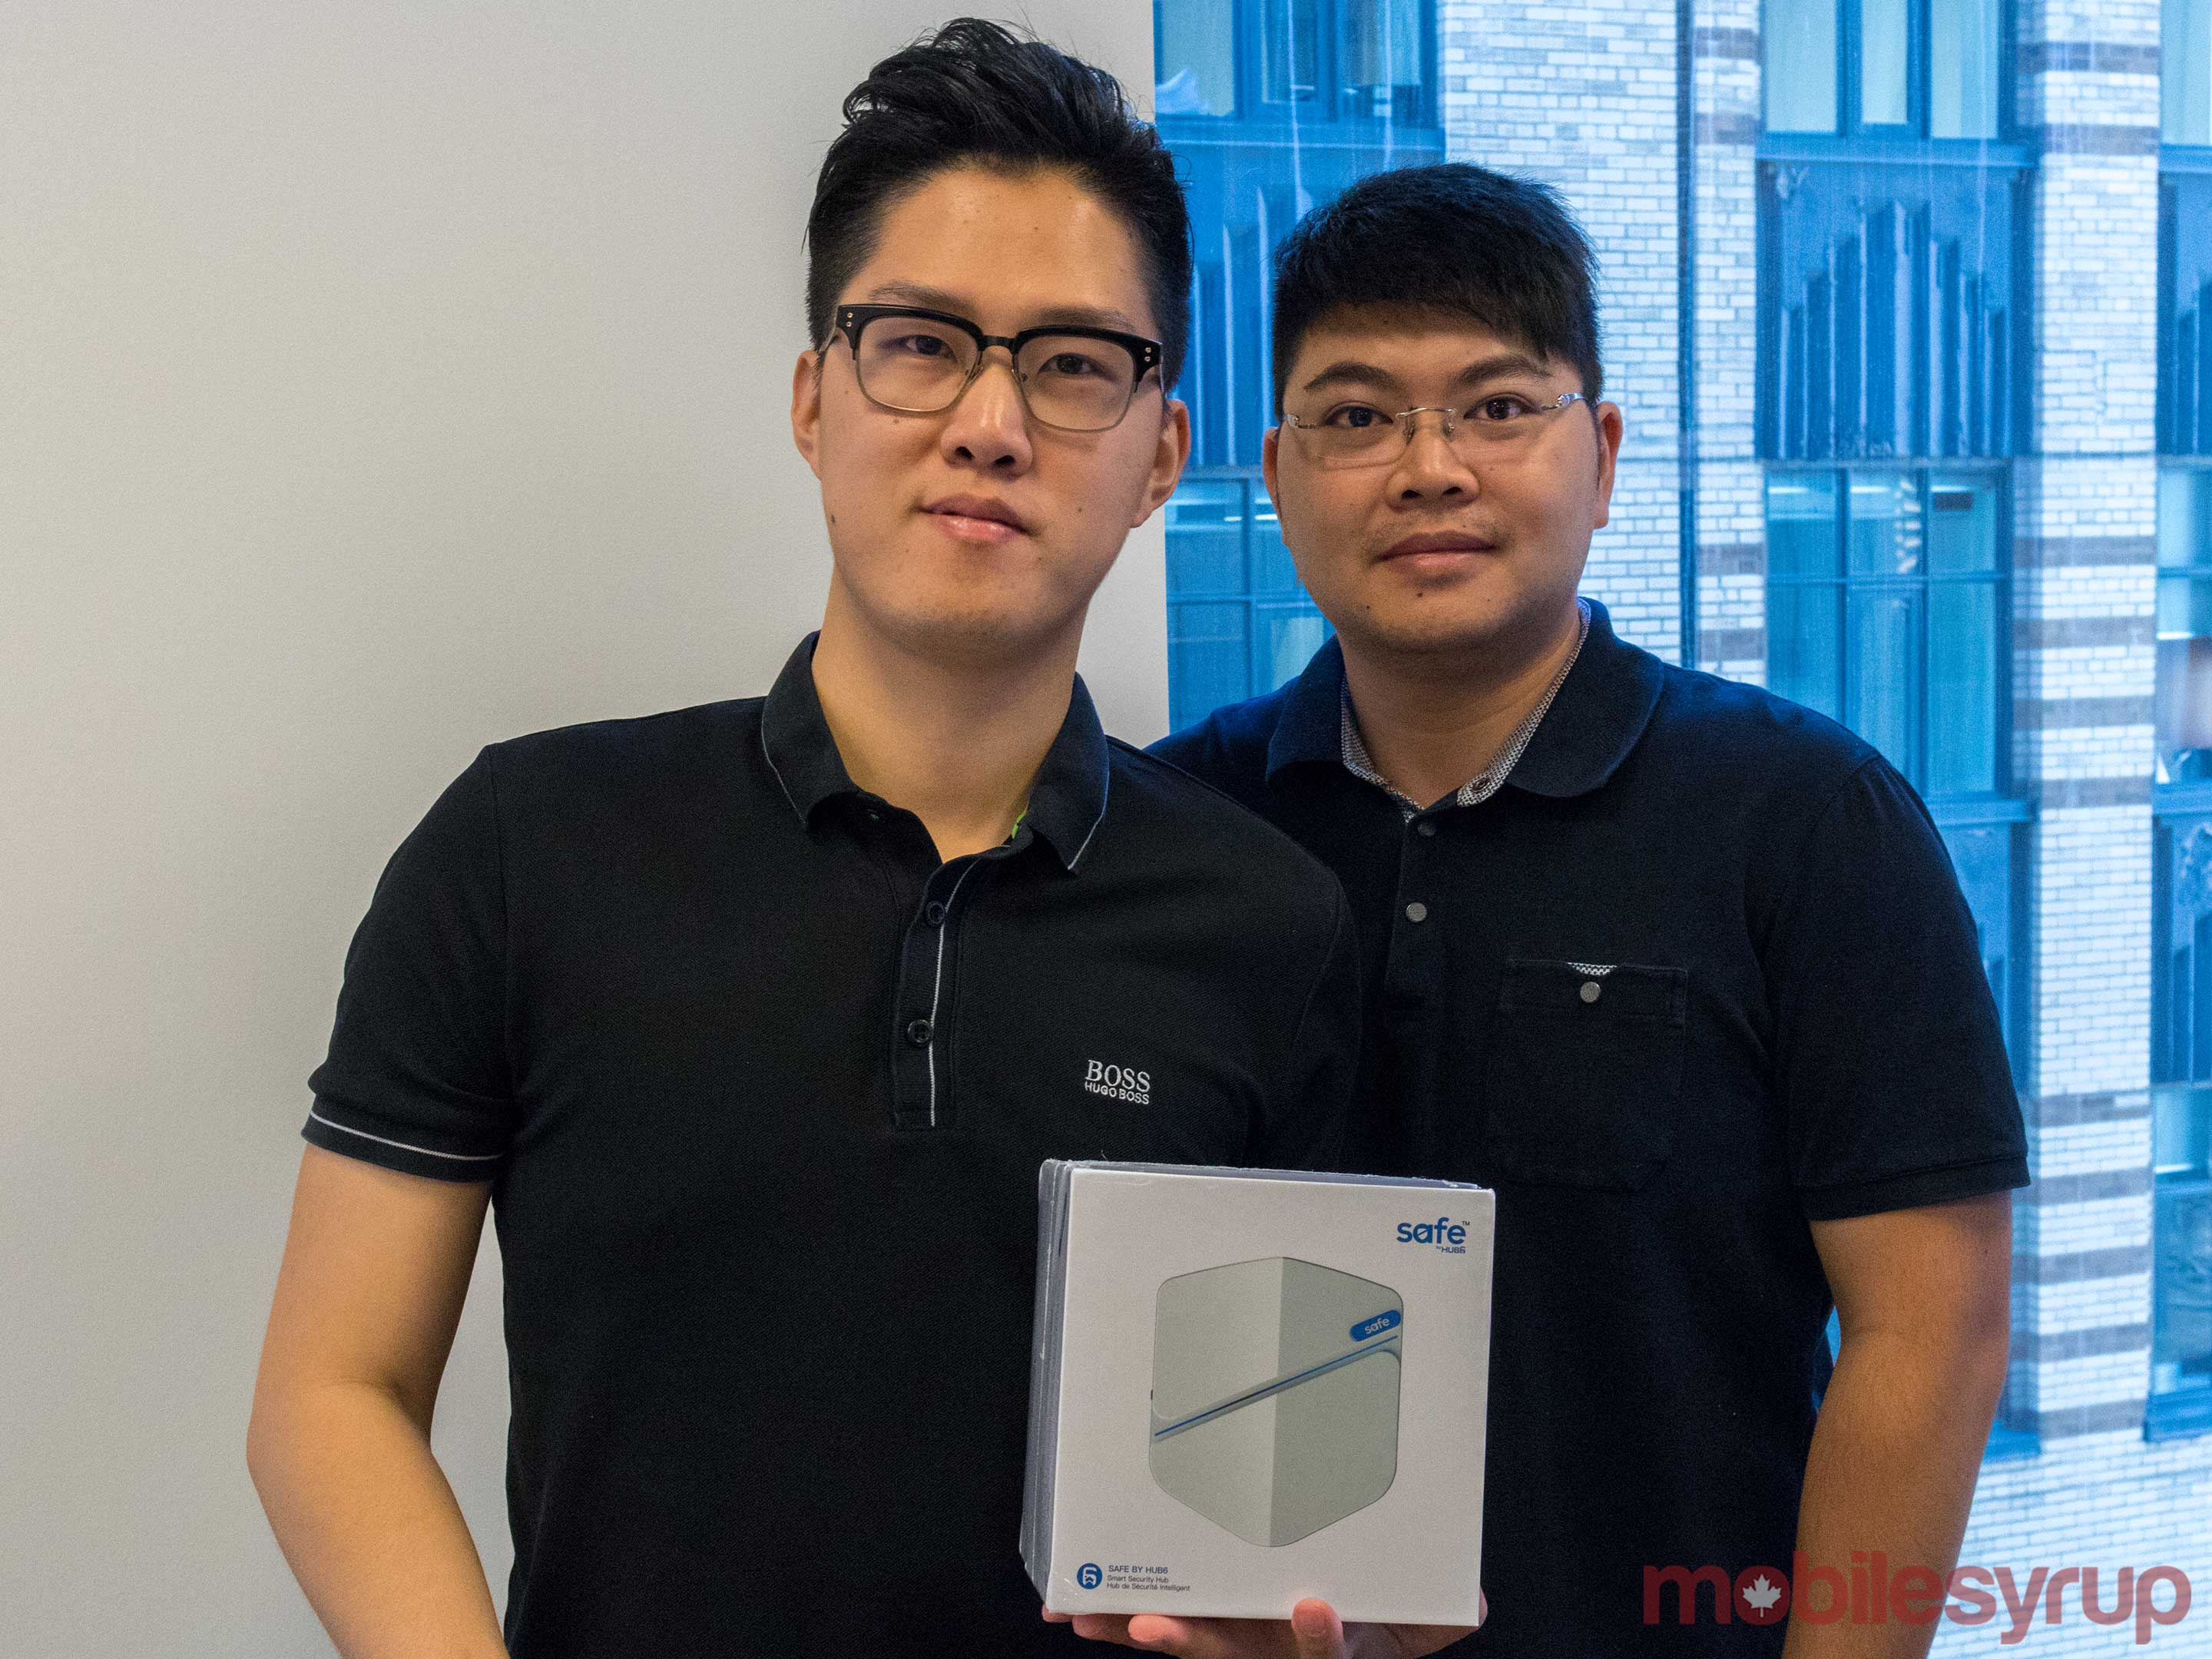 a photo of co-founders Ric Zhang and tony Chen